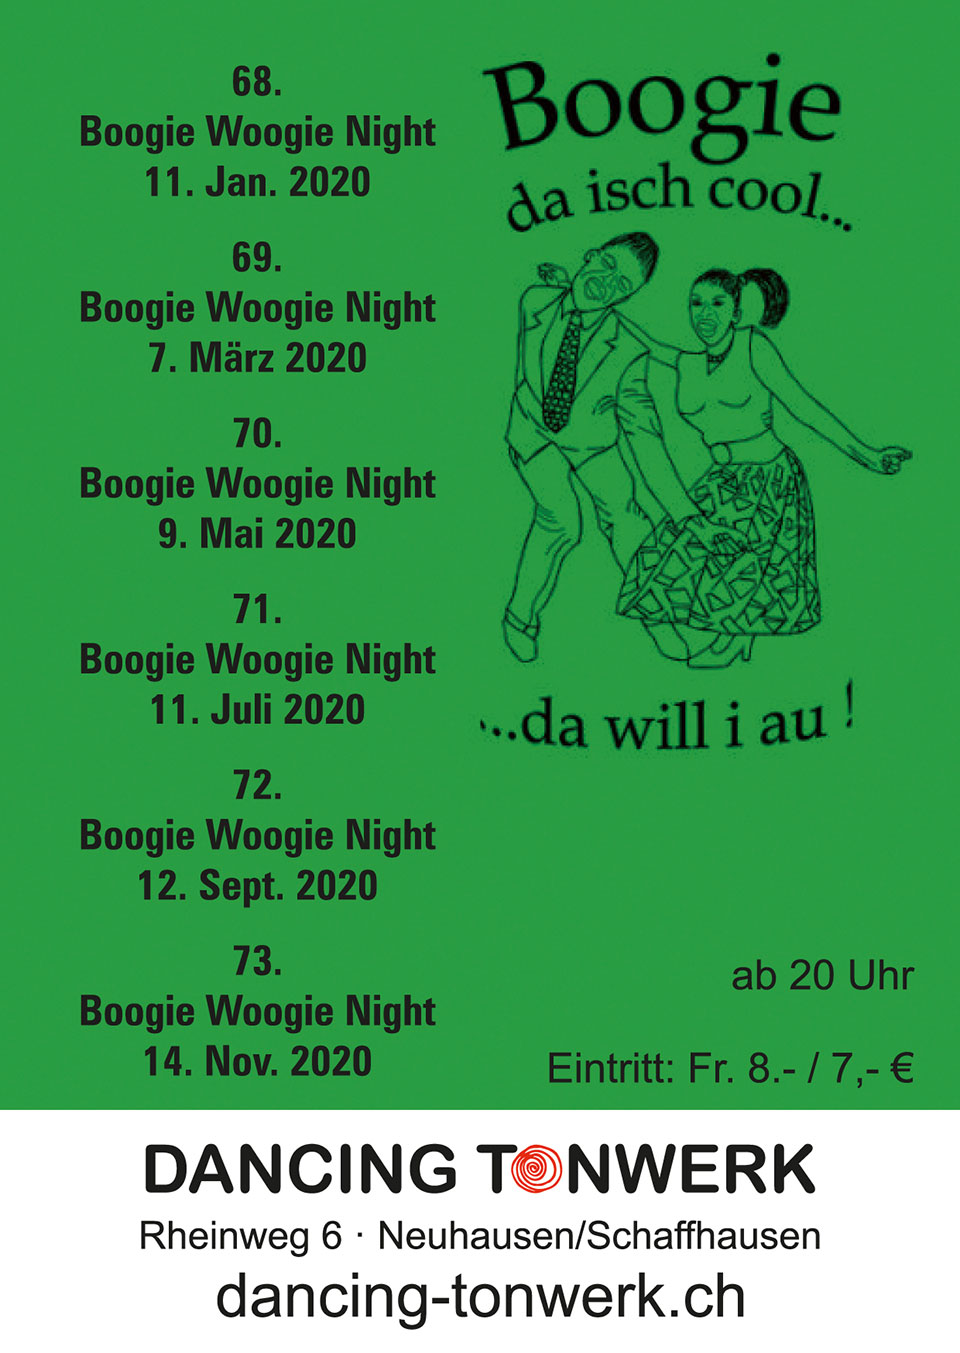 2019 boogie woogie night